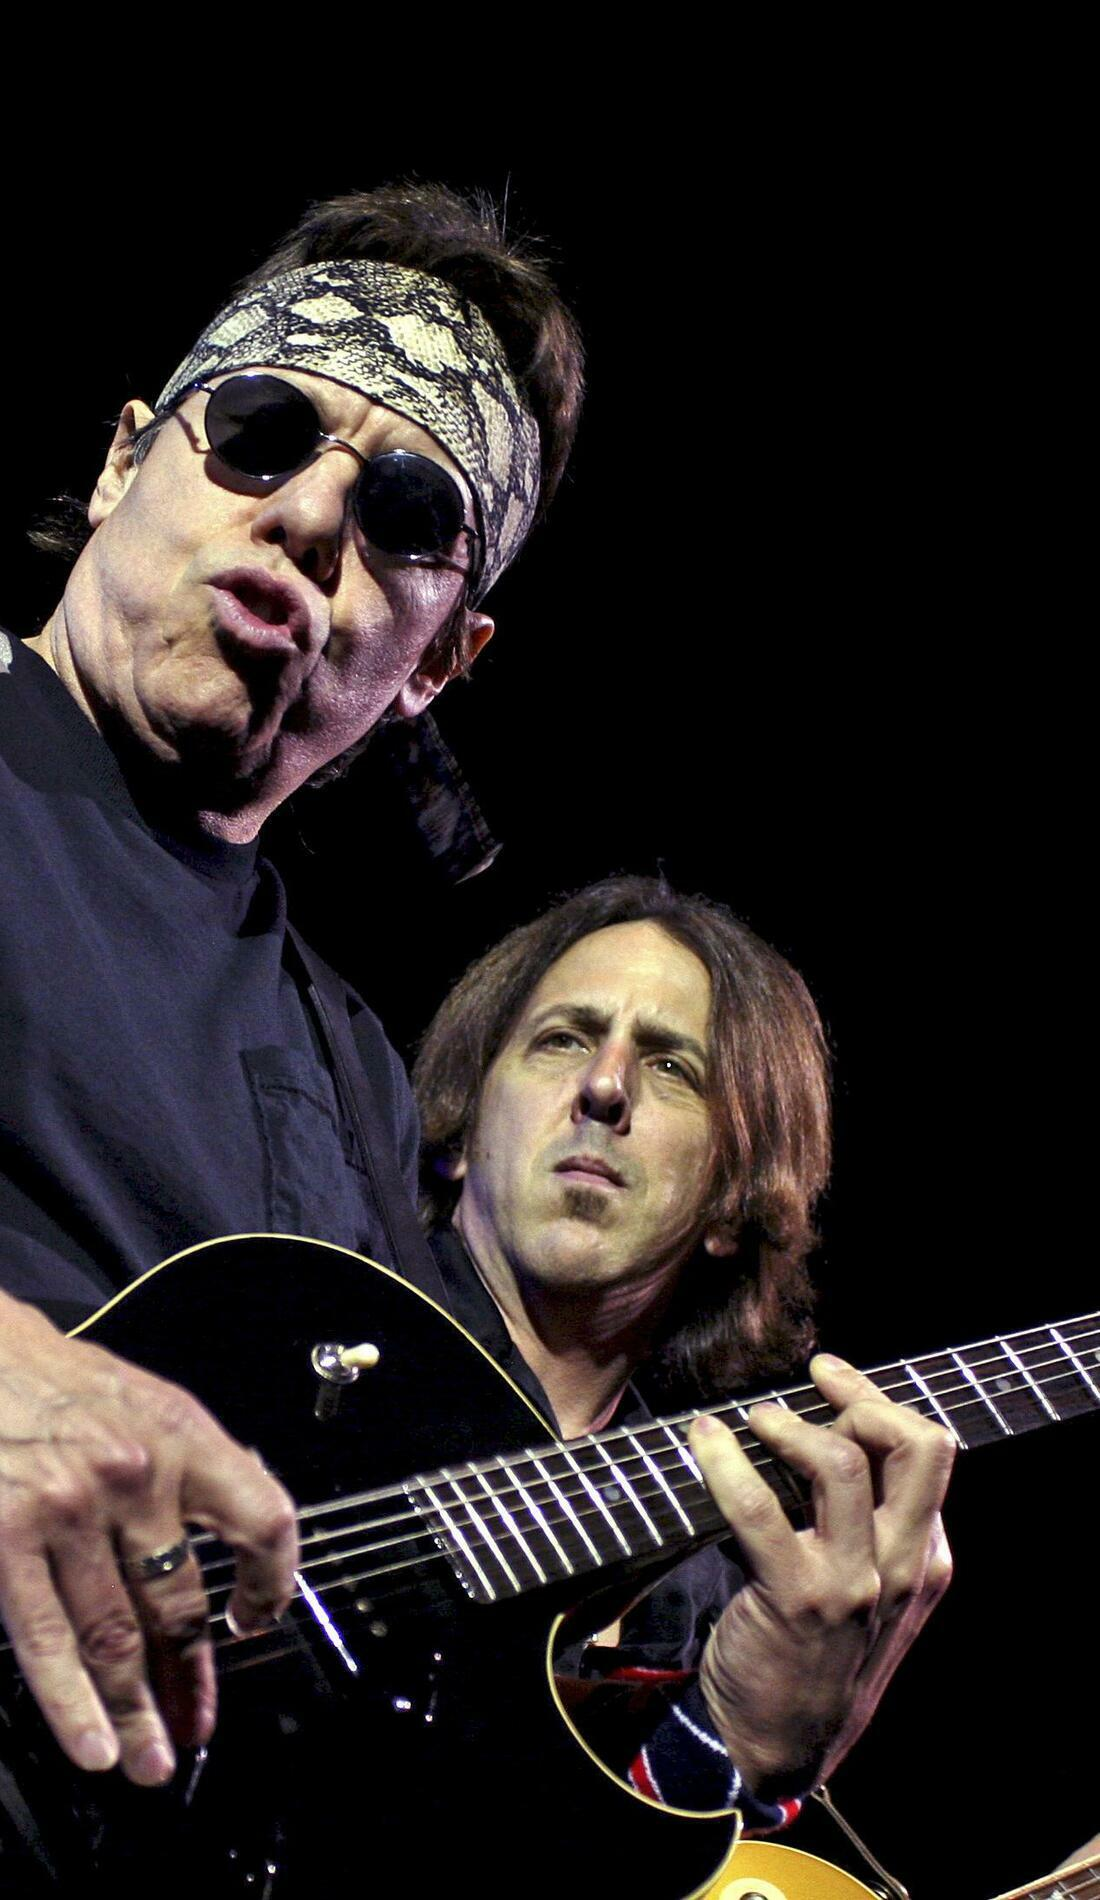 A George Thorogood & The Destroyers live event